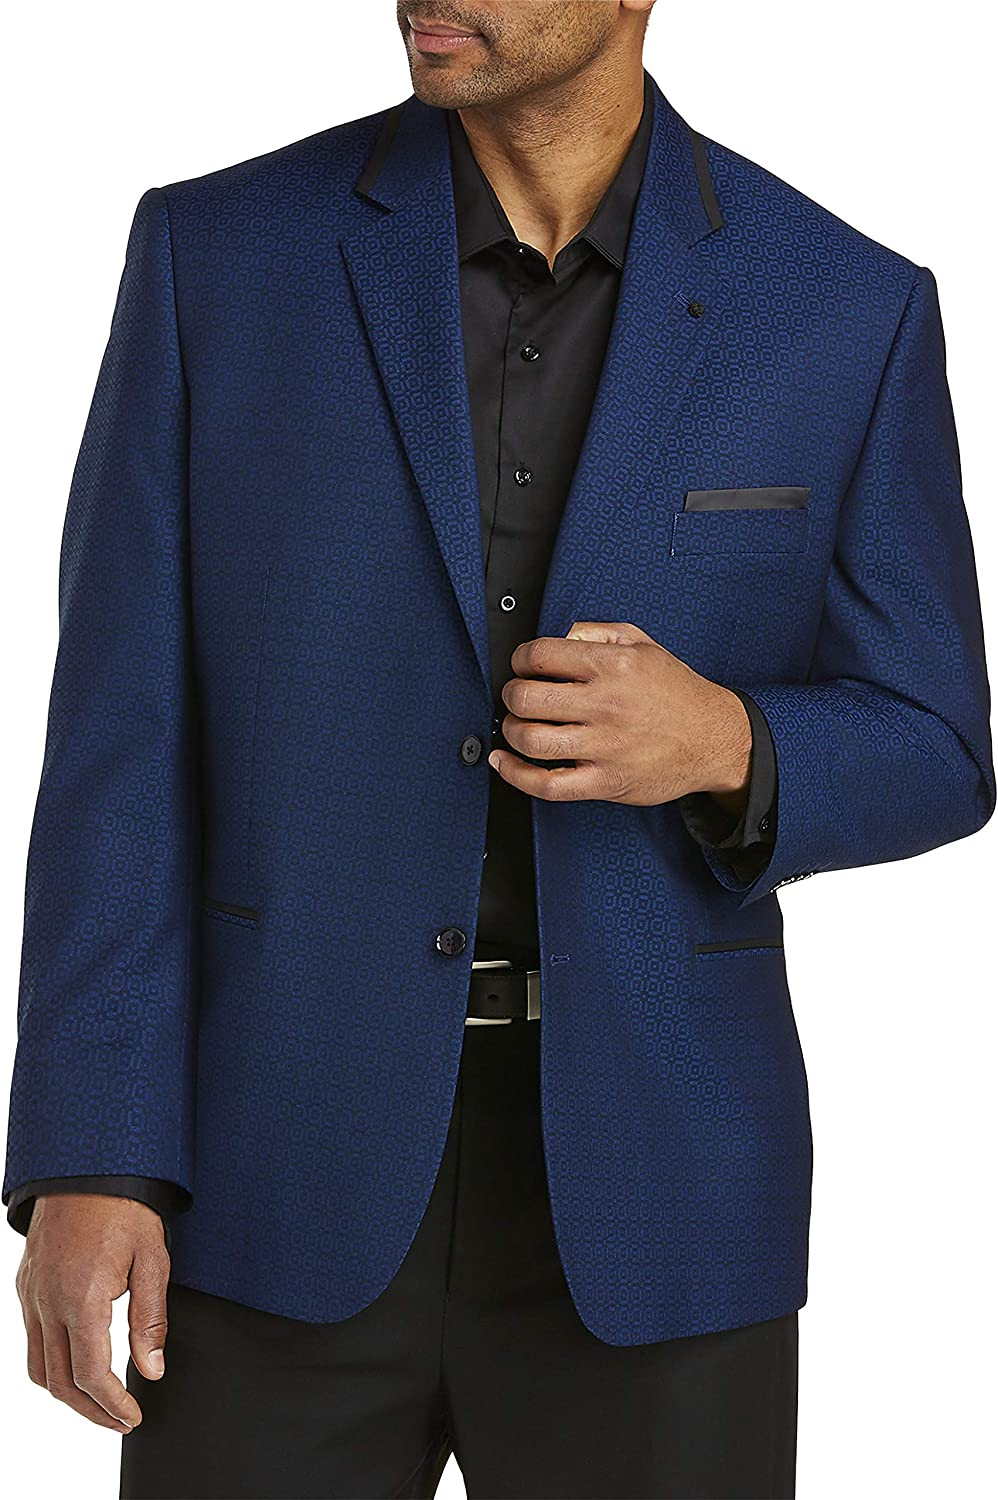 DXL Synrgy Big and Tall Jacket-Relaxer Geo-Pattern Stretch Sport Coat, Blue